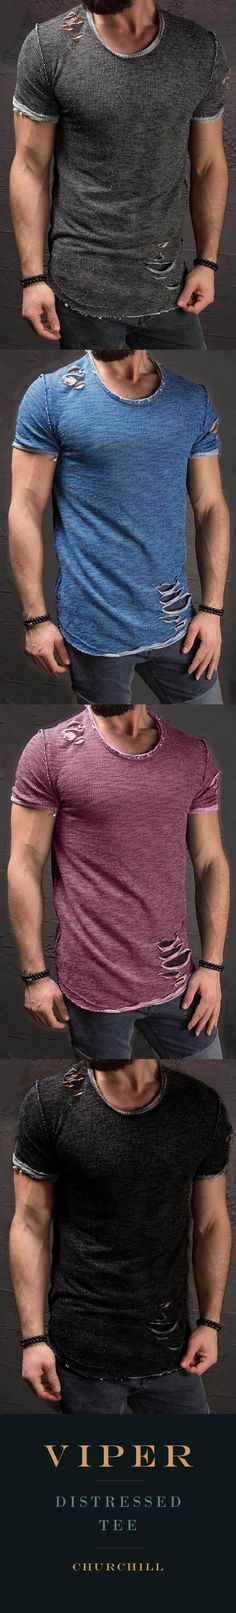 90ec1c120 13 Best Distressed Tee images in 2016 | T shirts, Dressing rooms ...